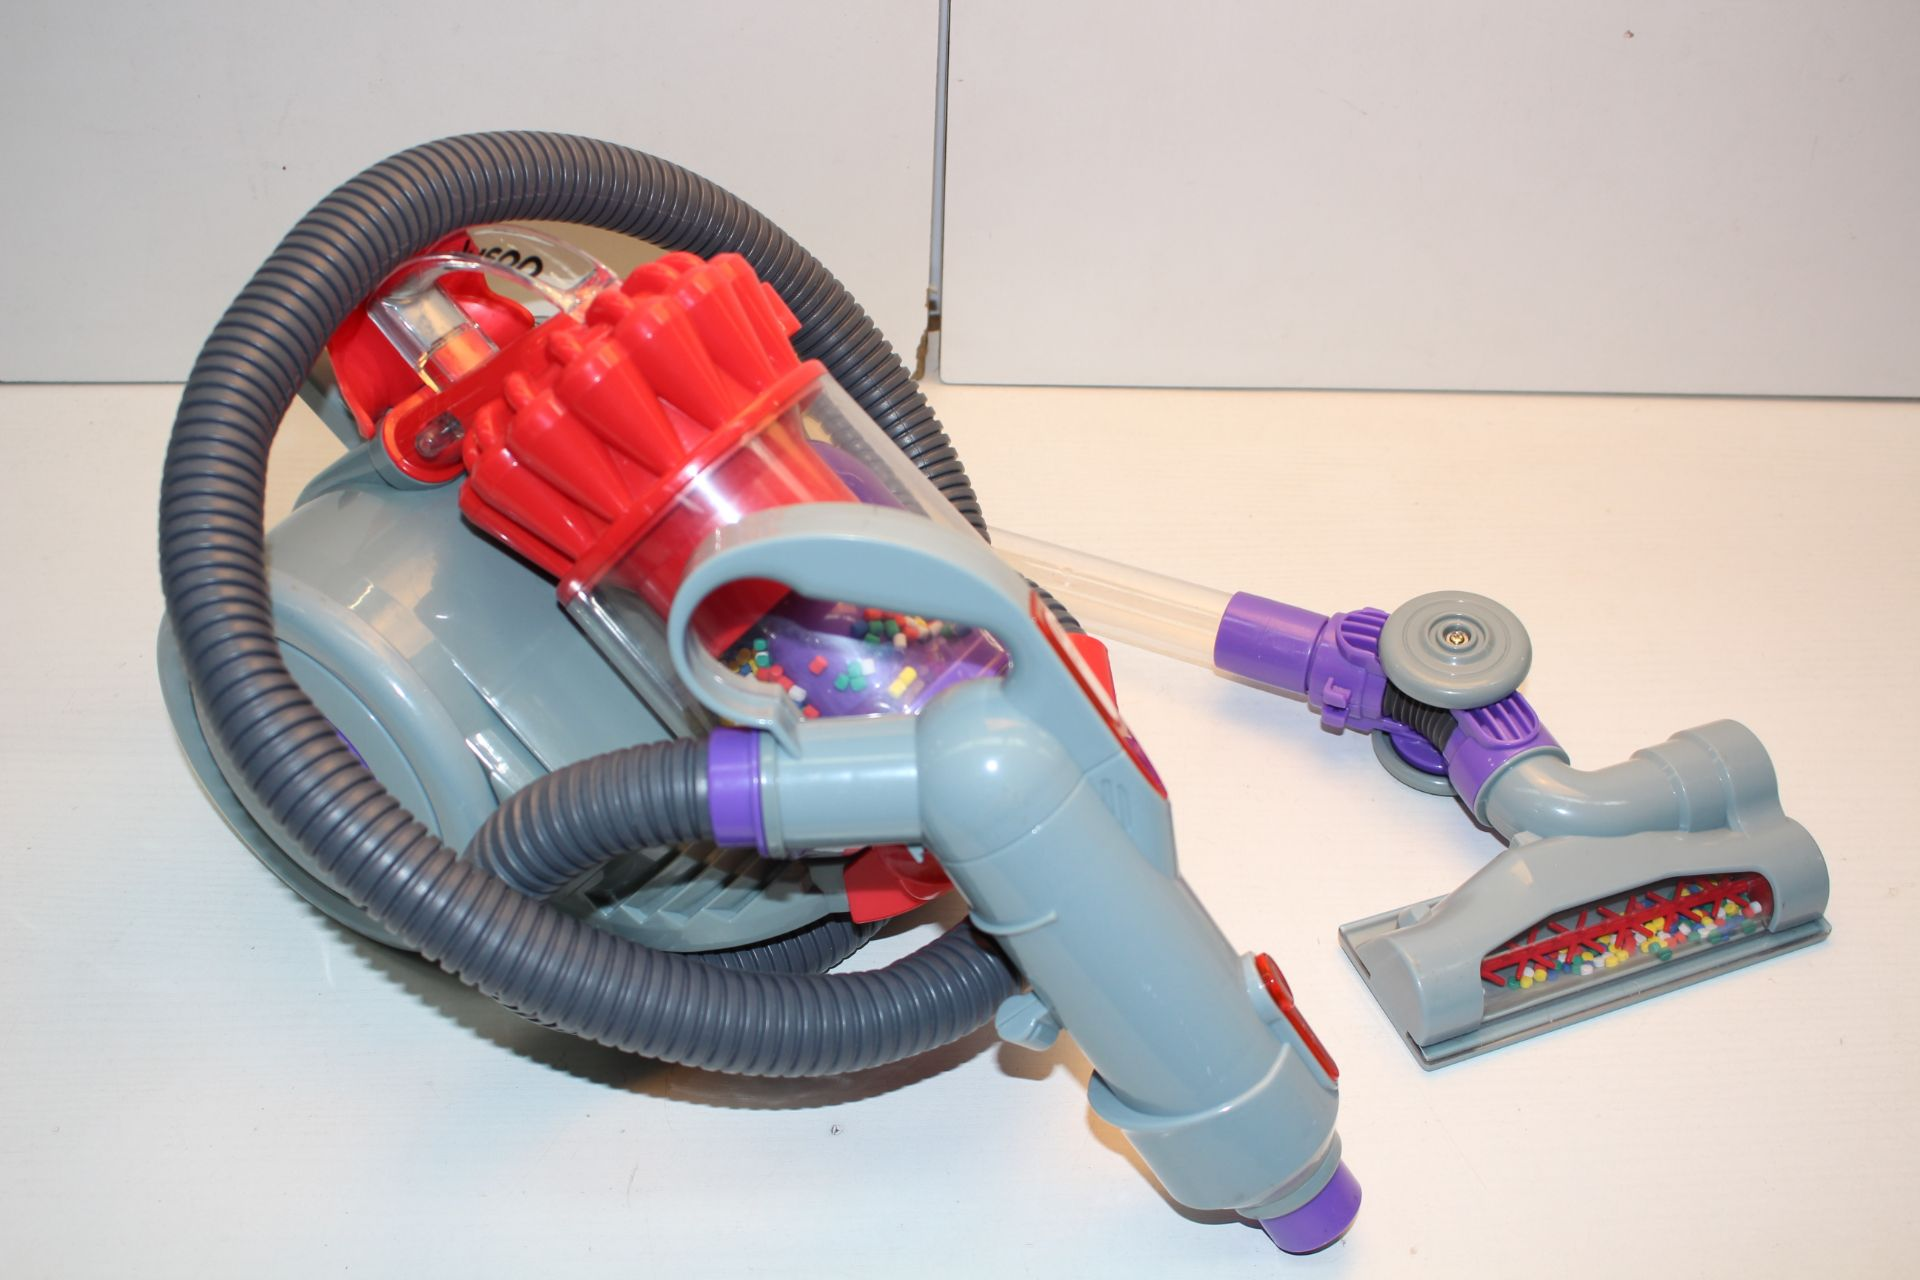 UNBOXED CASDON DYSON CYLINDER VACUUM CLEANER TOYCondition ReportAppraisal Available on Request-